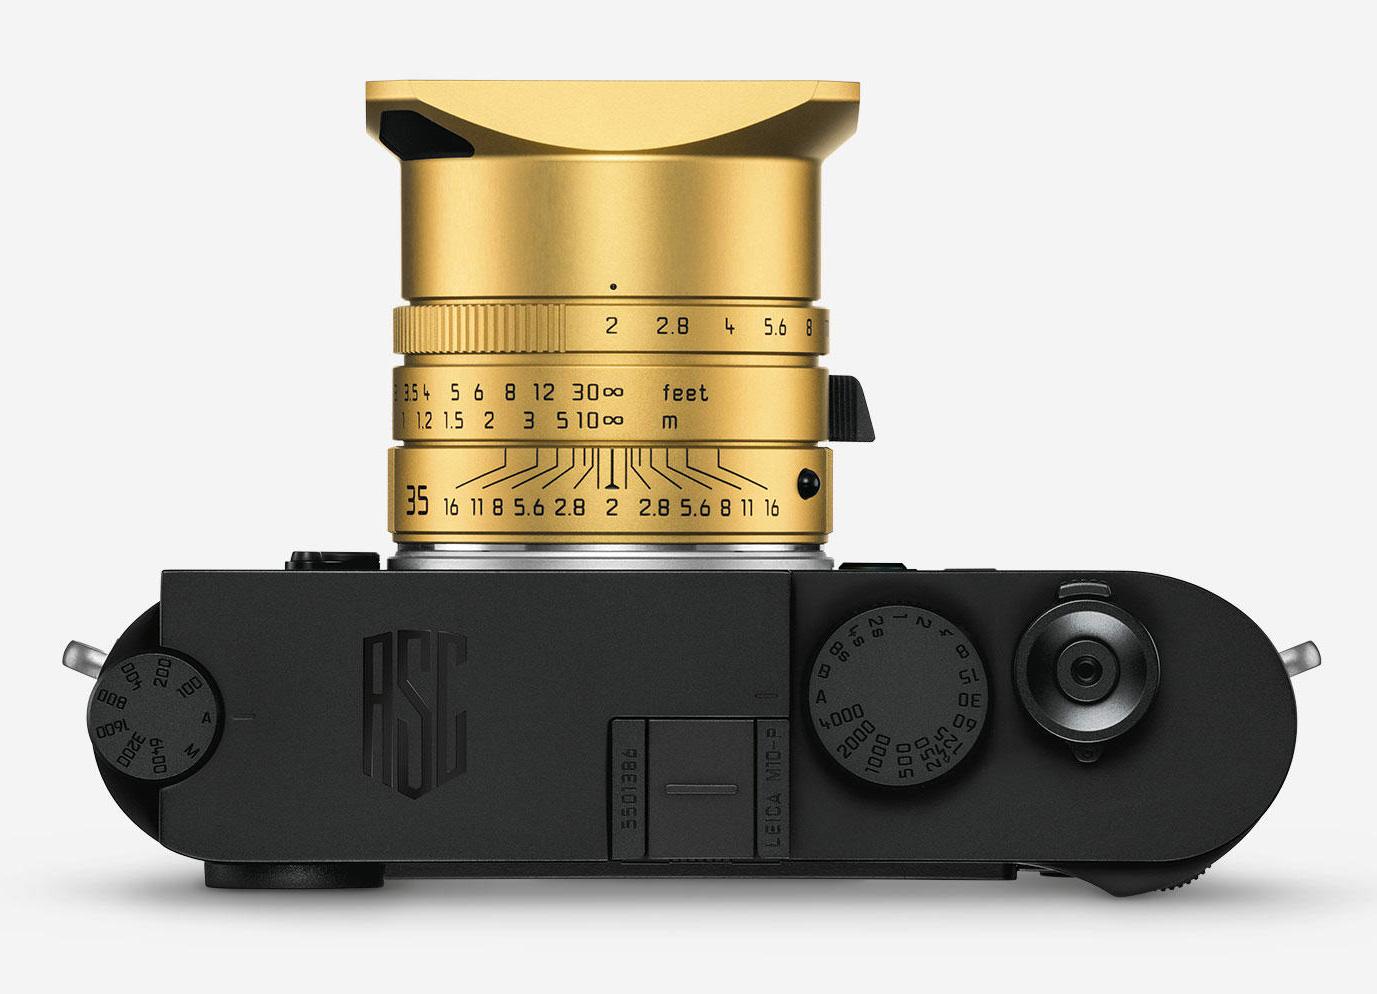 Leica Unveils a Limited M10-P Rangefinder with New Cinematic Functions at werd.com